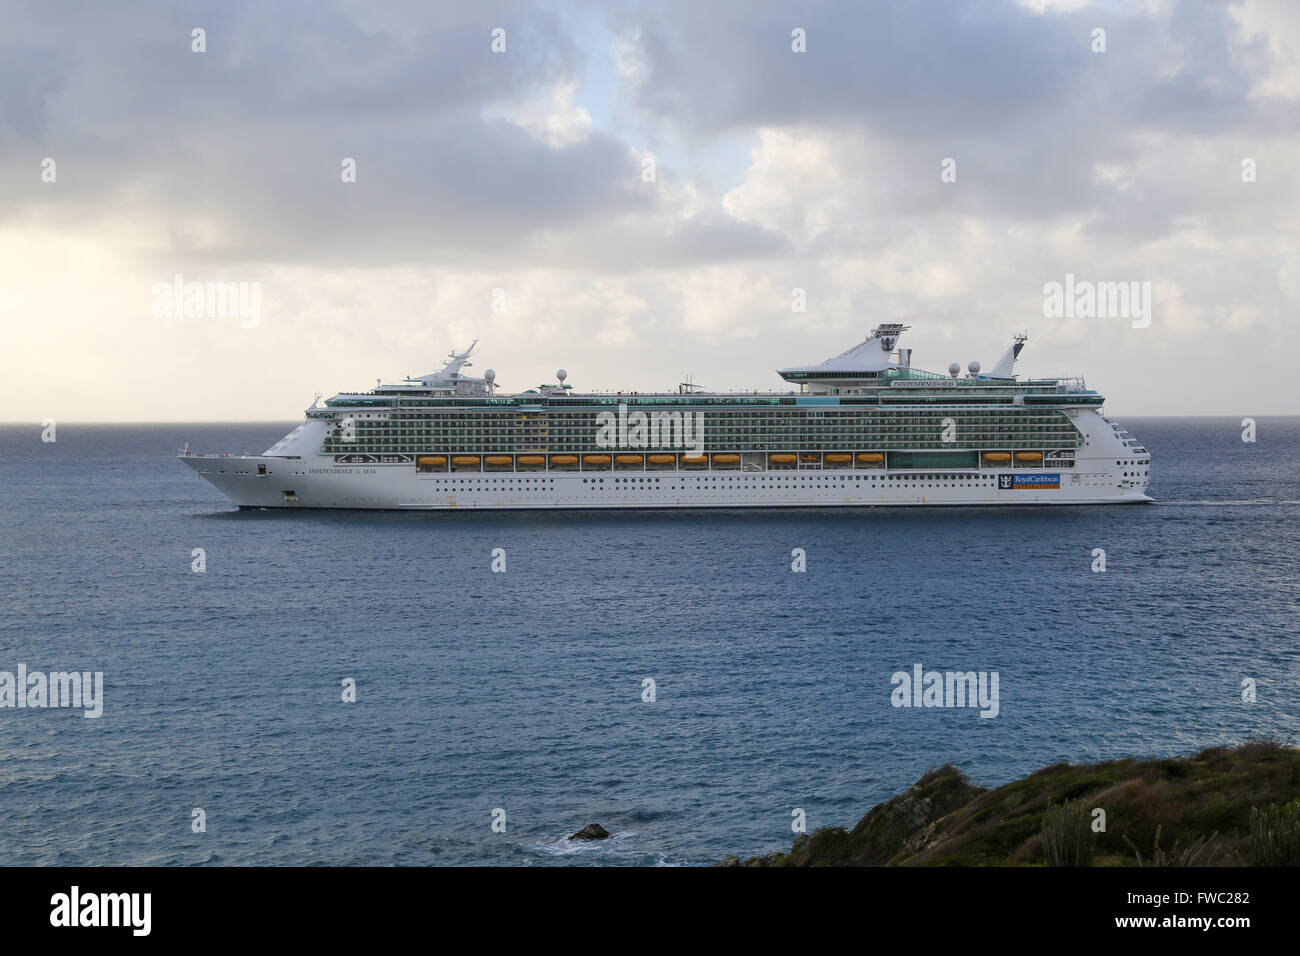 Independence of the Seas - Stock Image